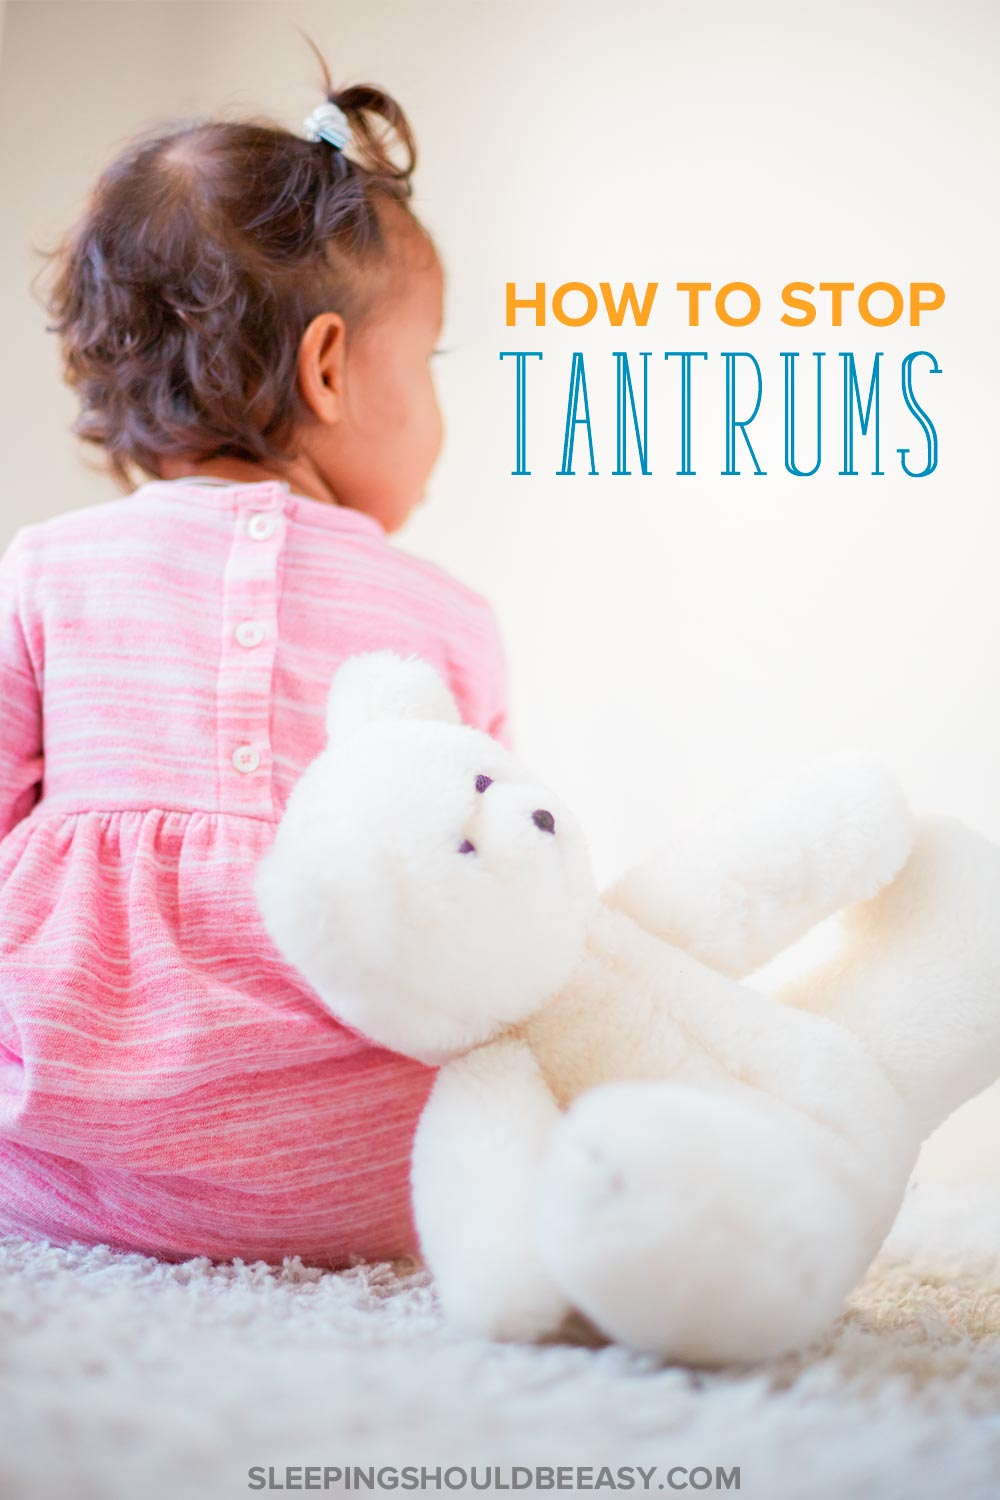 Tantrums are some of the most challenging experiences, for both parents and kids. Here is a simple solution to tantrums, meltdowns and outbursts.